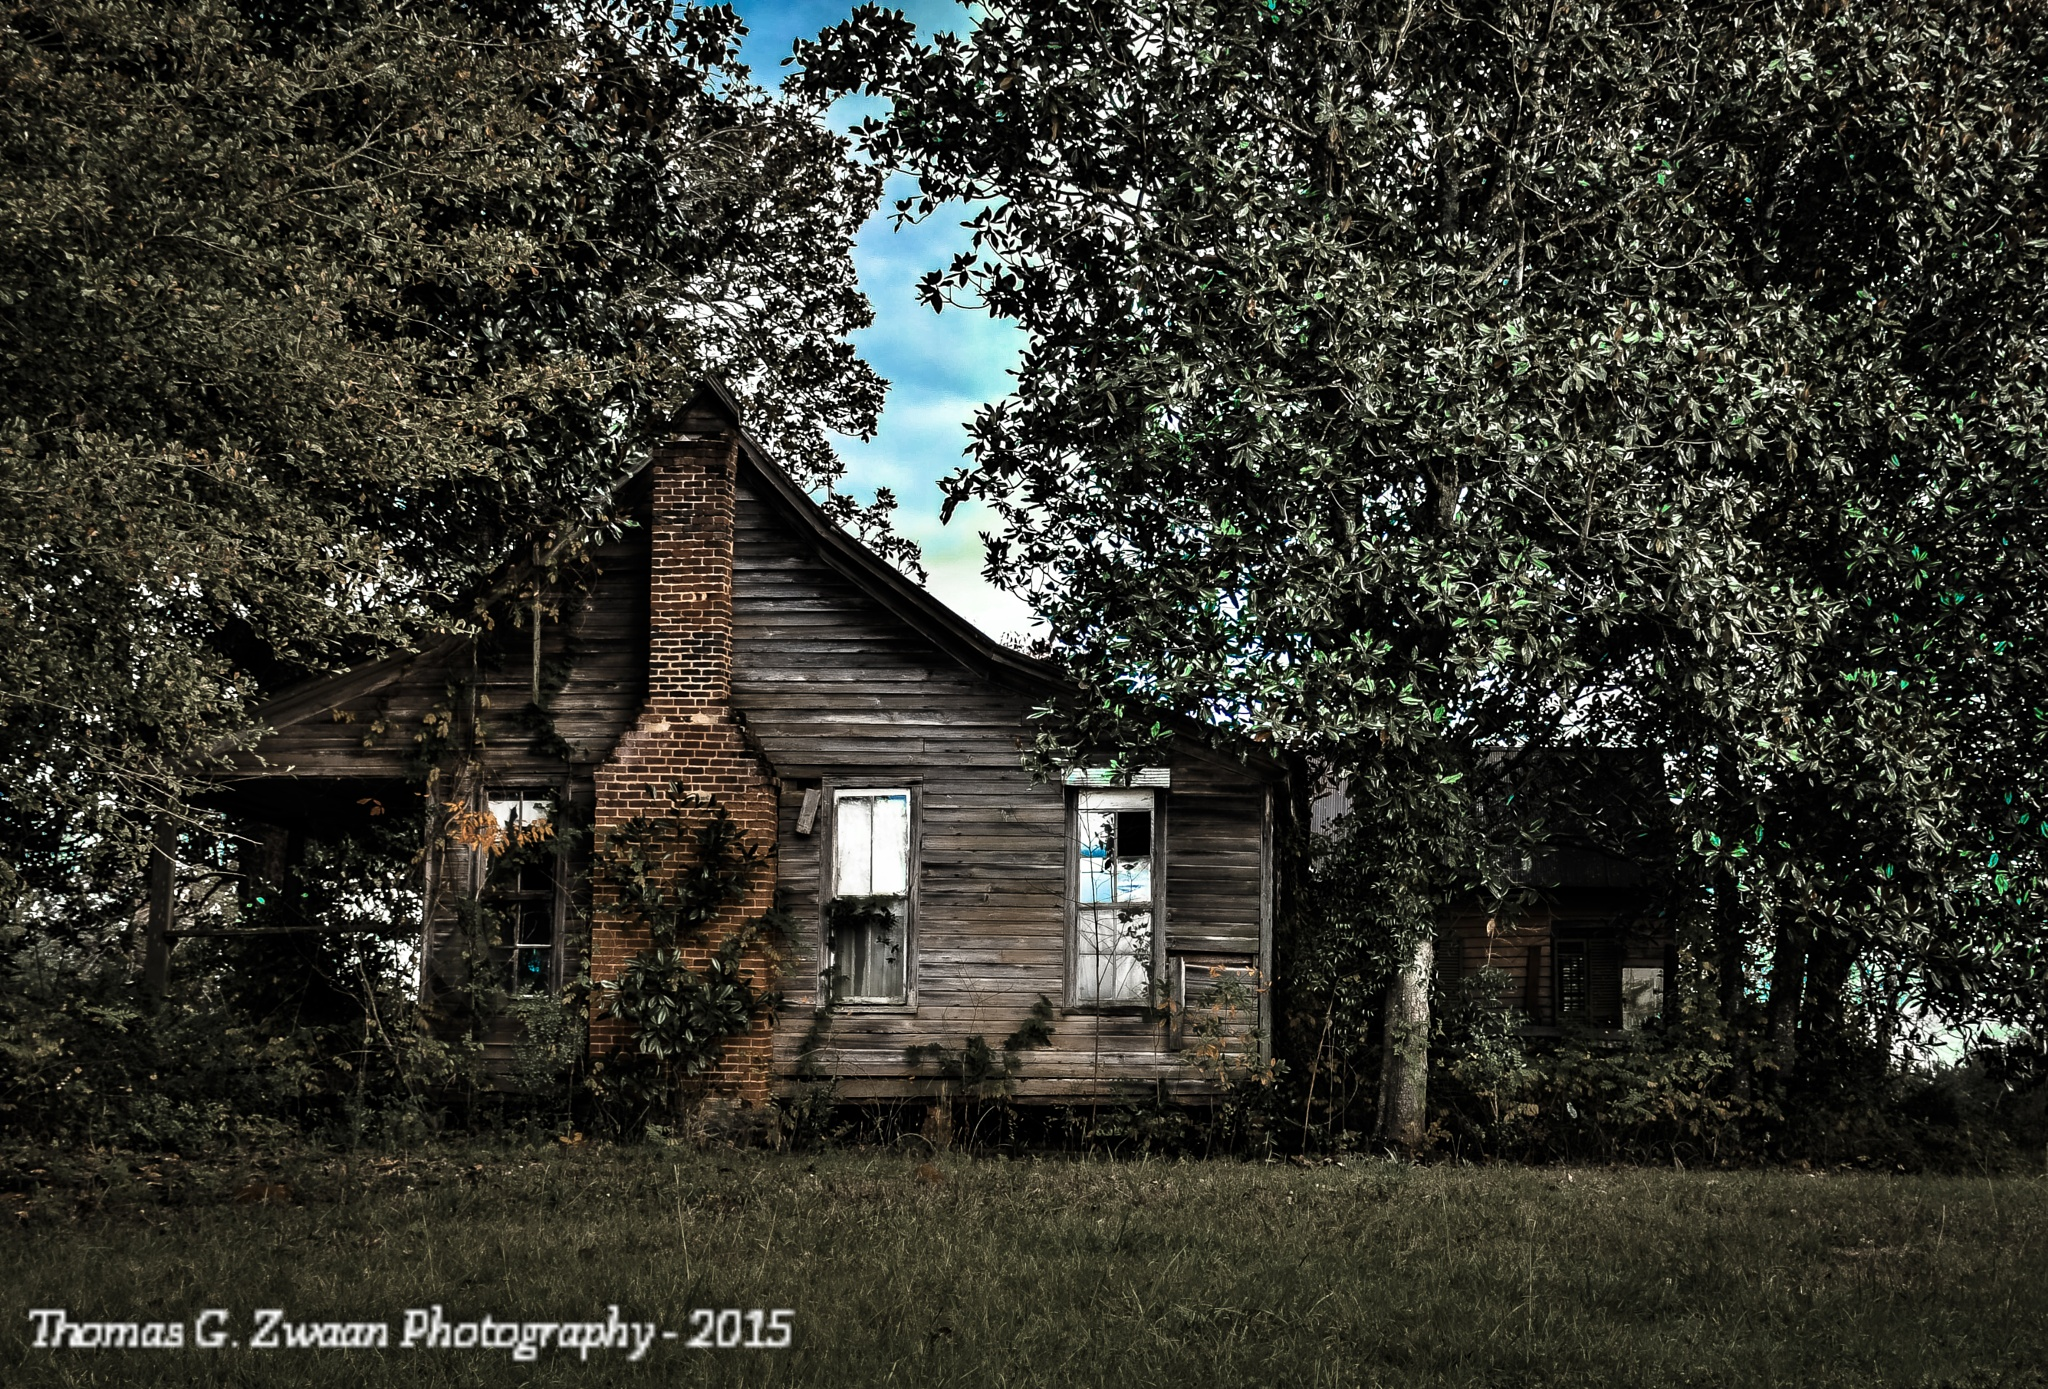 This Old House by thomasgzwaanPhotography